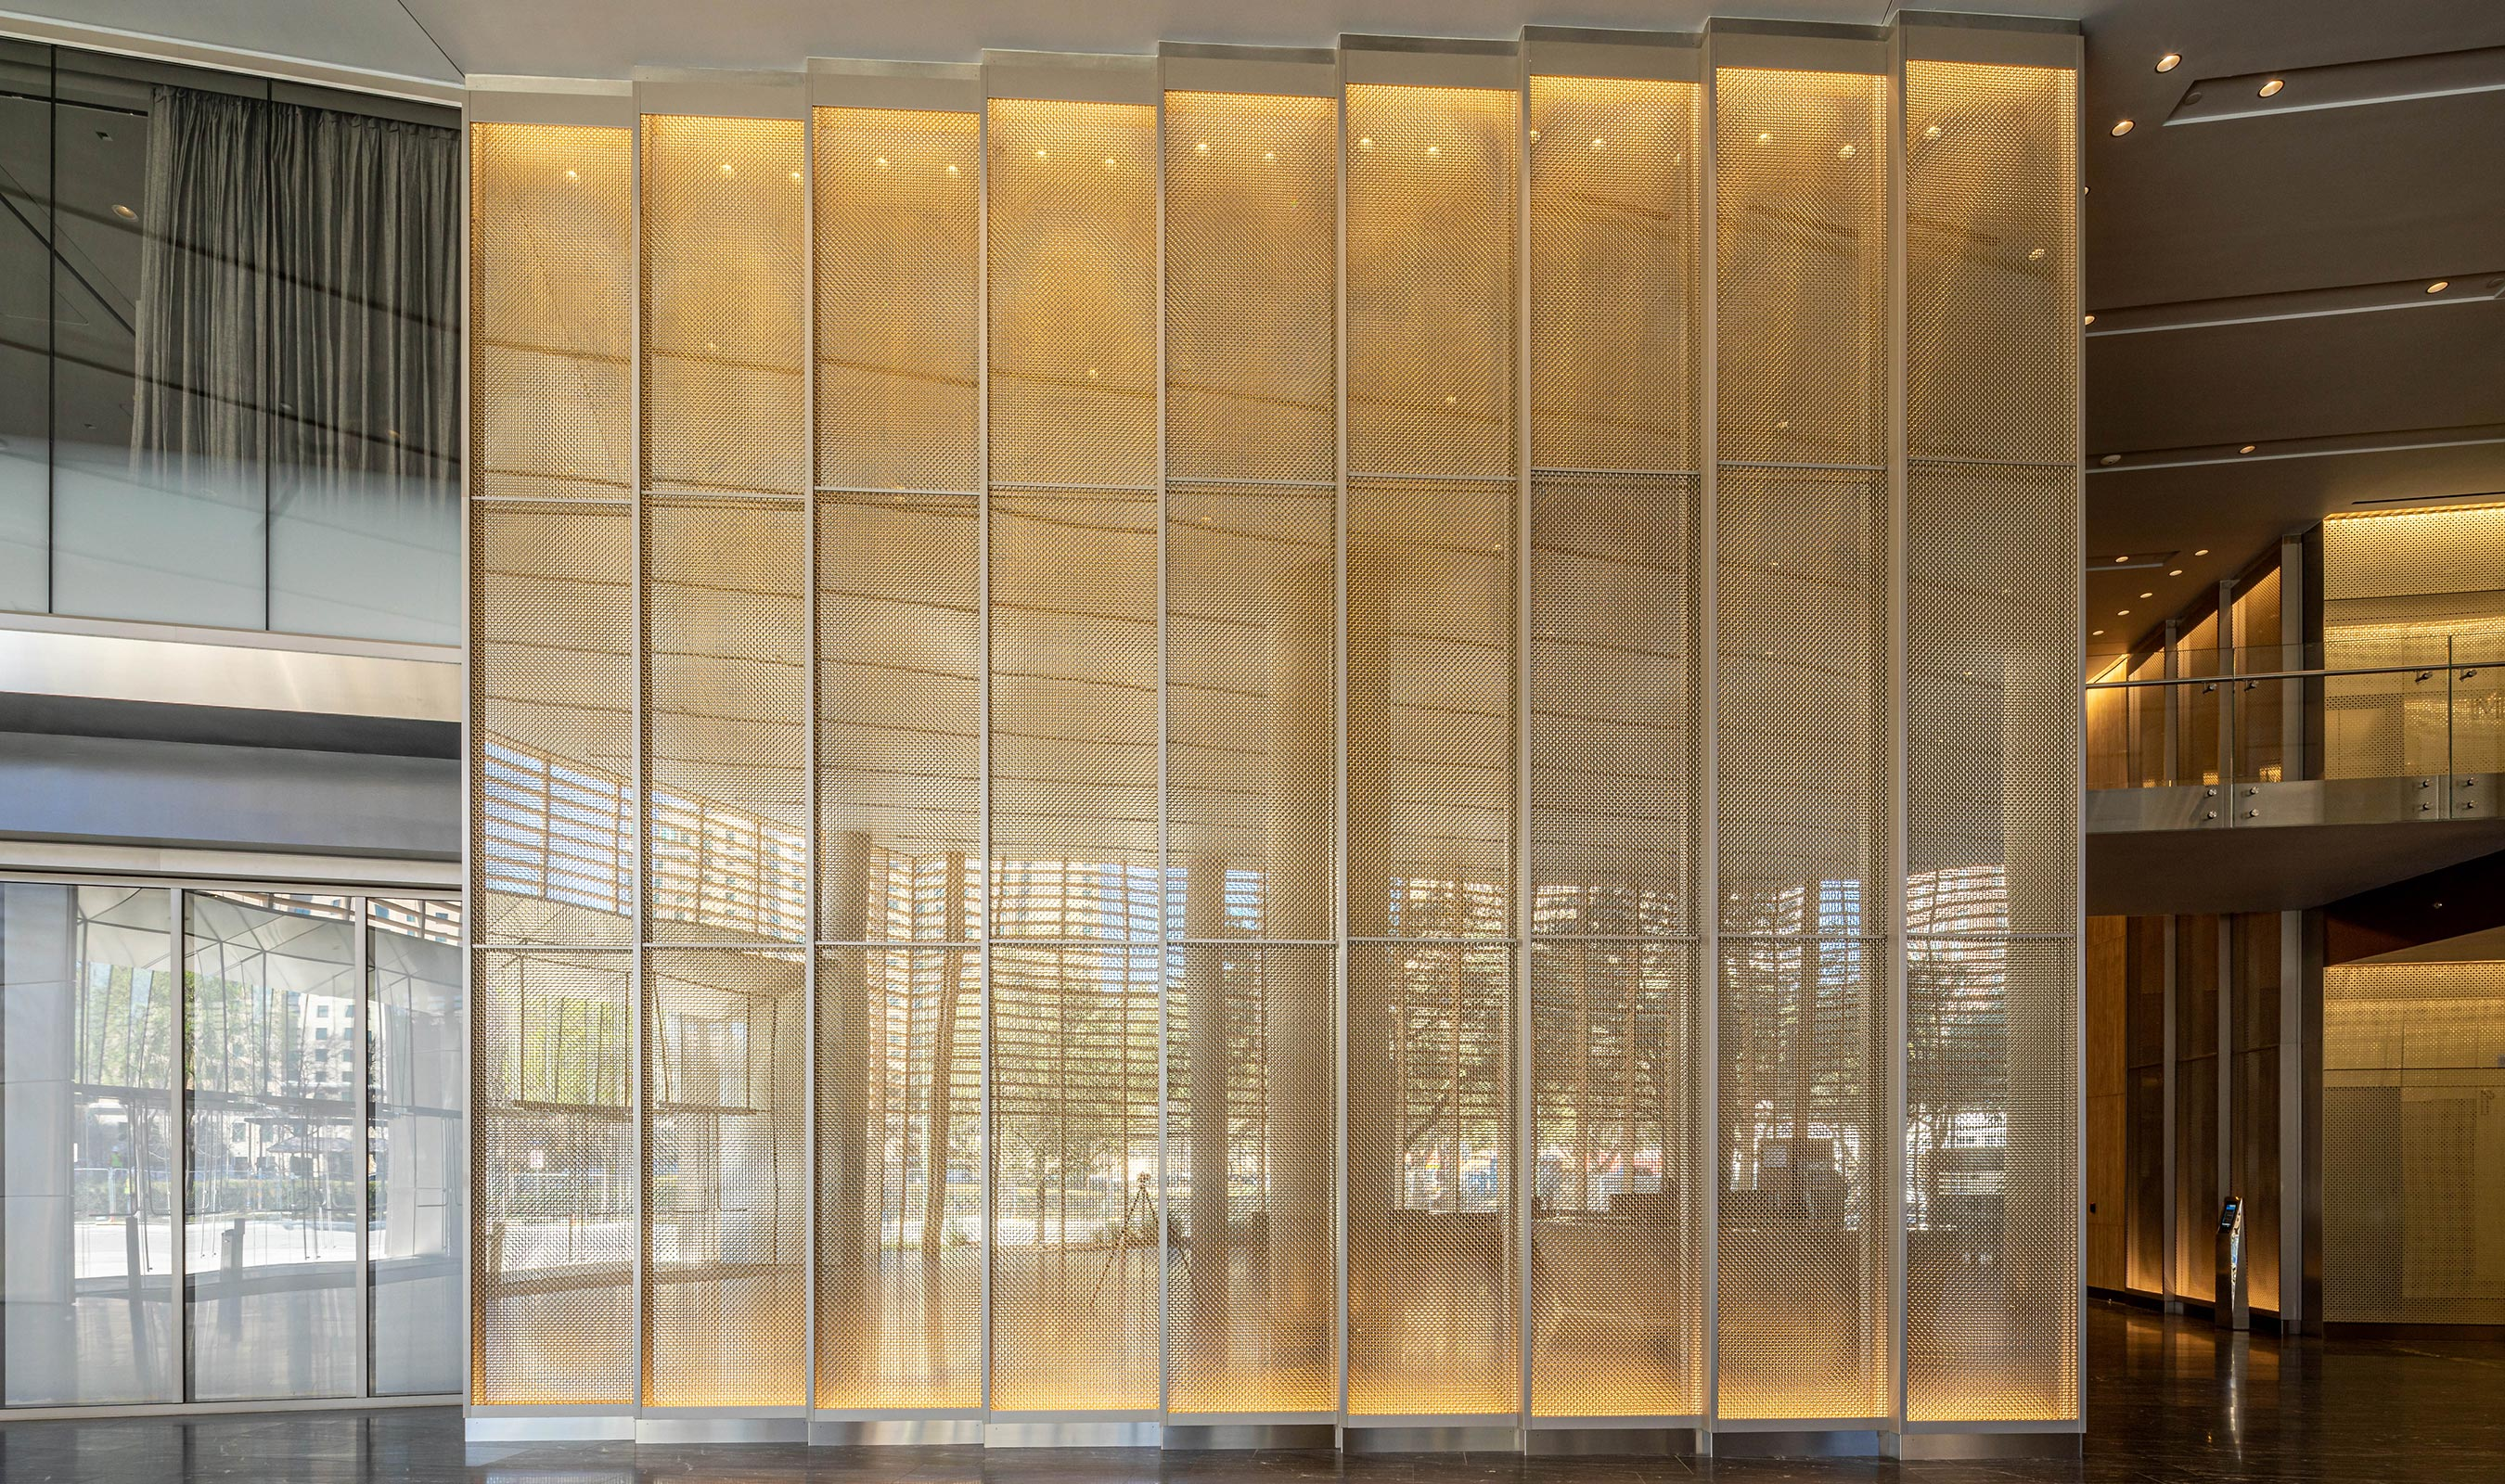 Frost Tower features Banker Wire's M22-80 in stainless steel and brass mixed alloy as cladding on a feature wall in the ground-level entrance lobby.